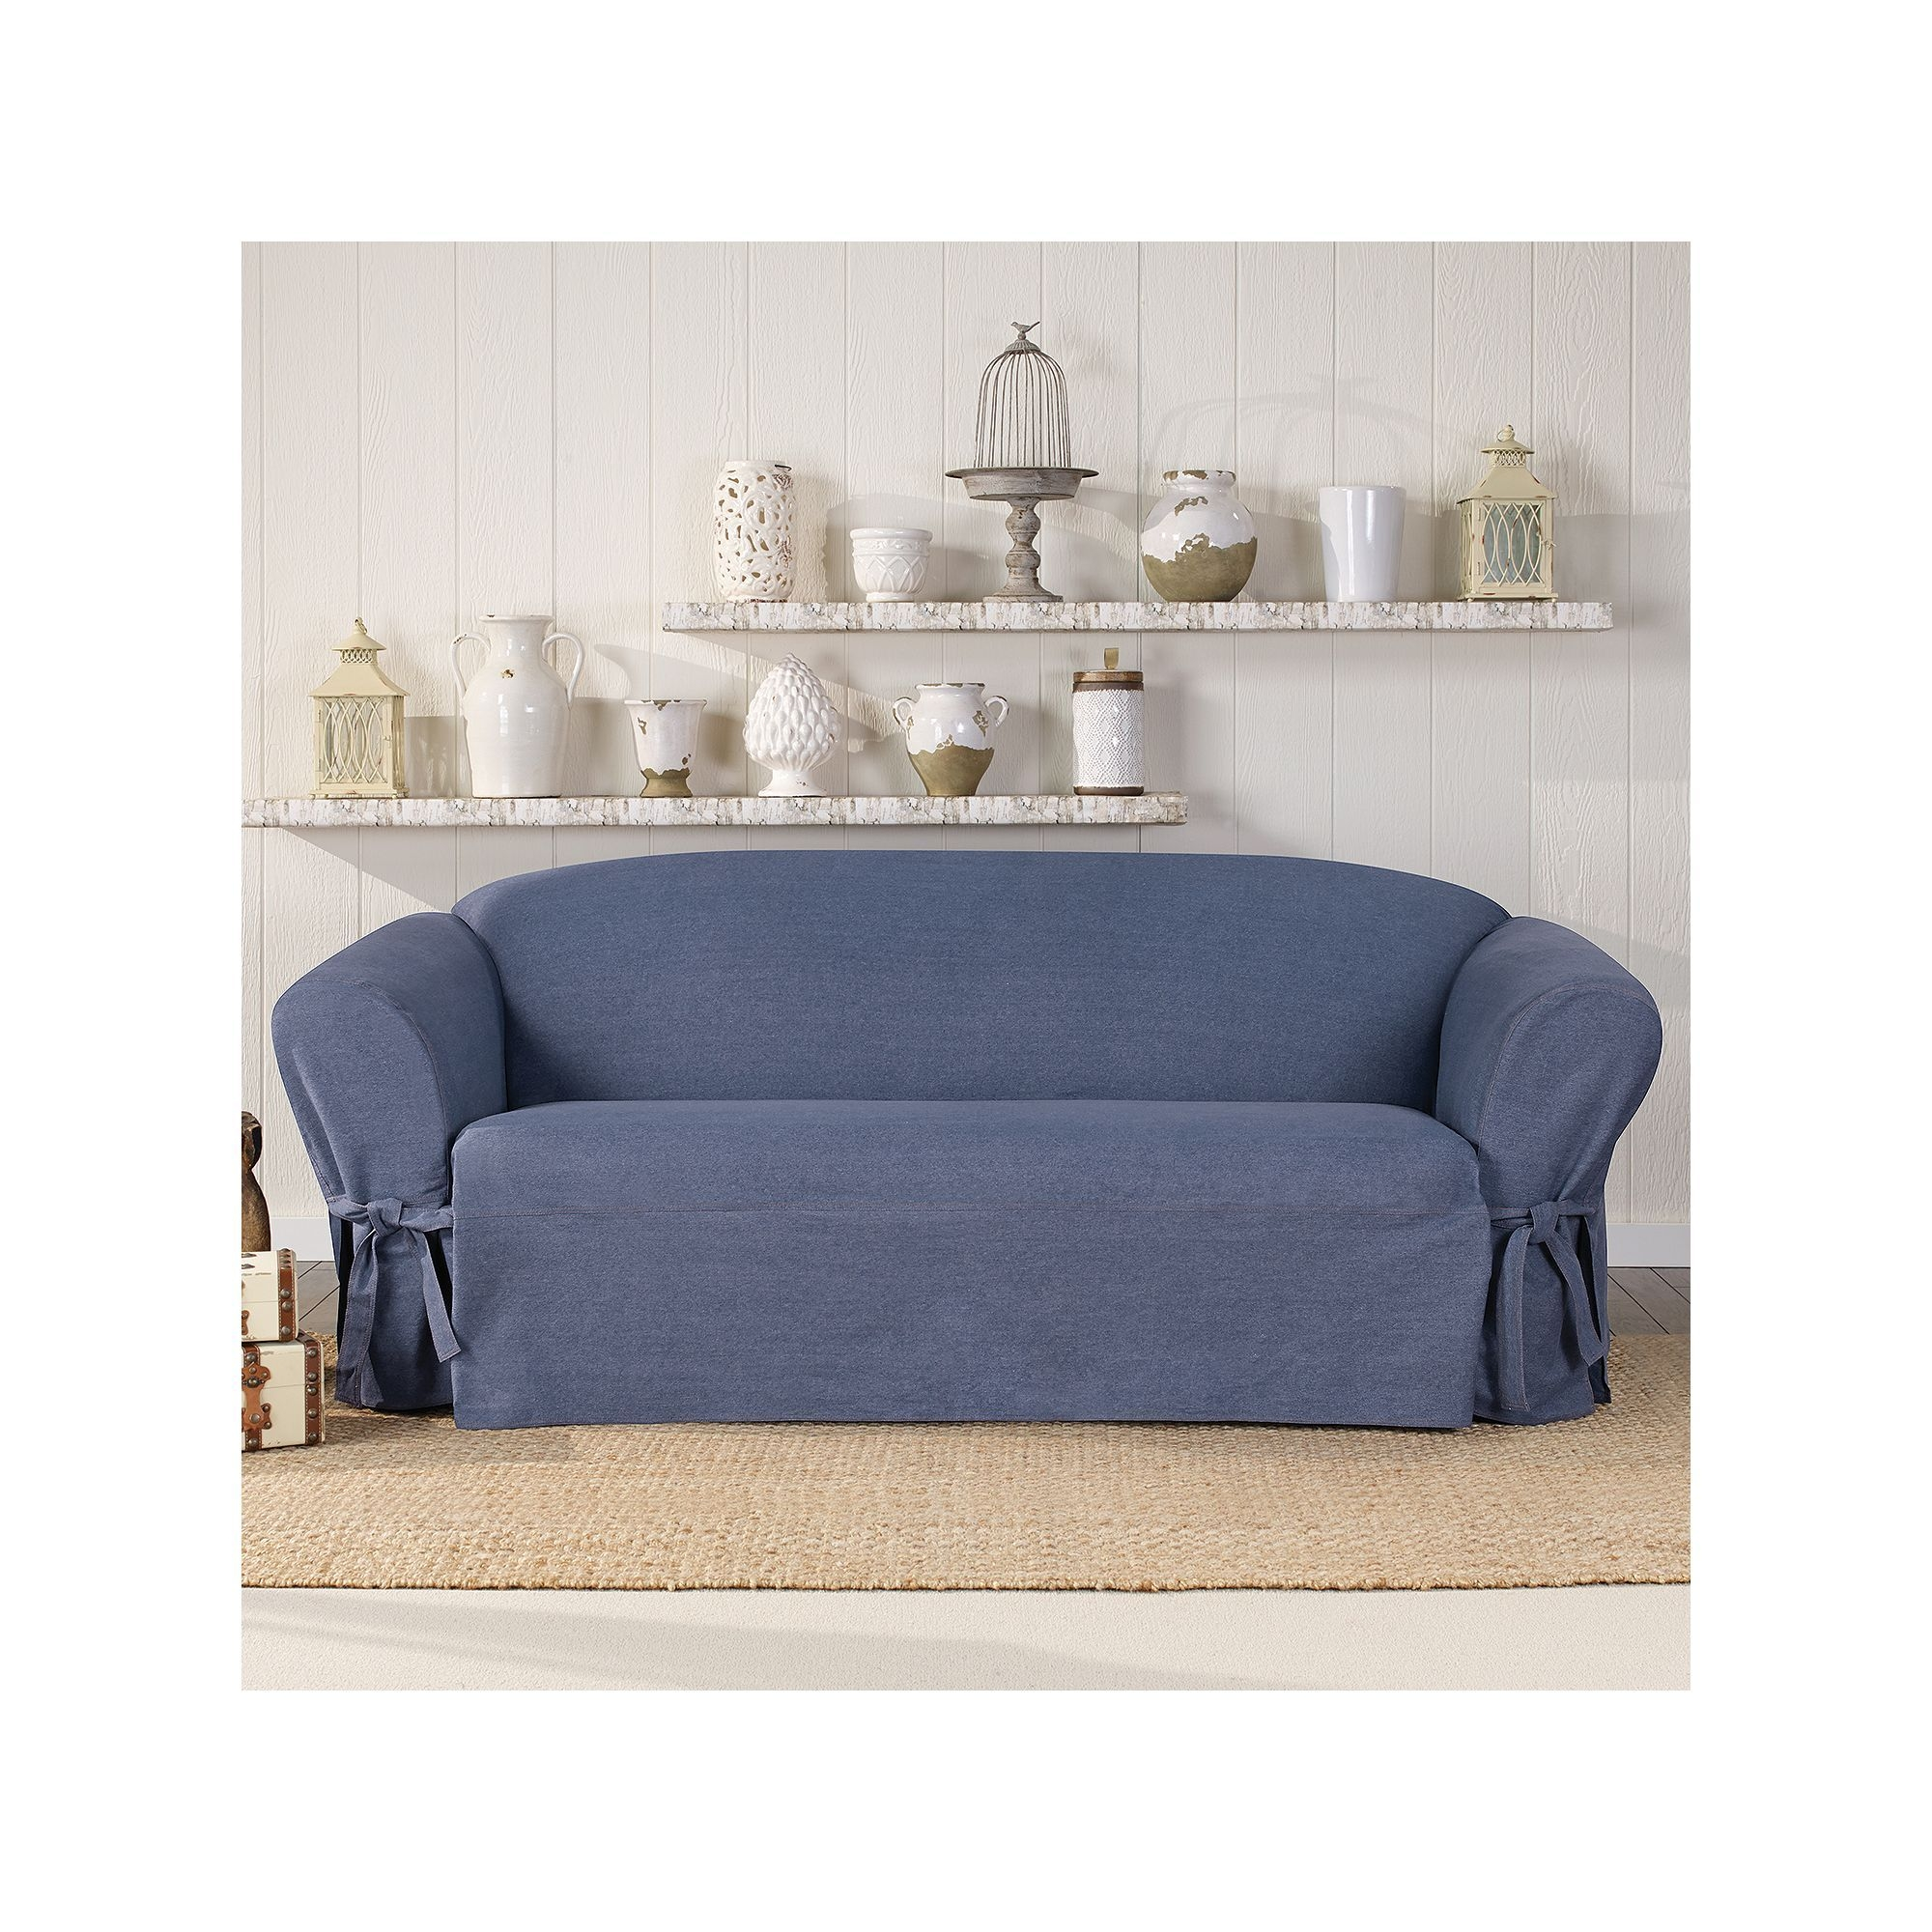 Sectional couch cover slipcover